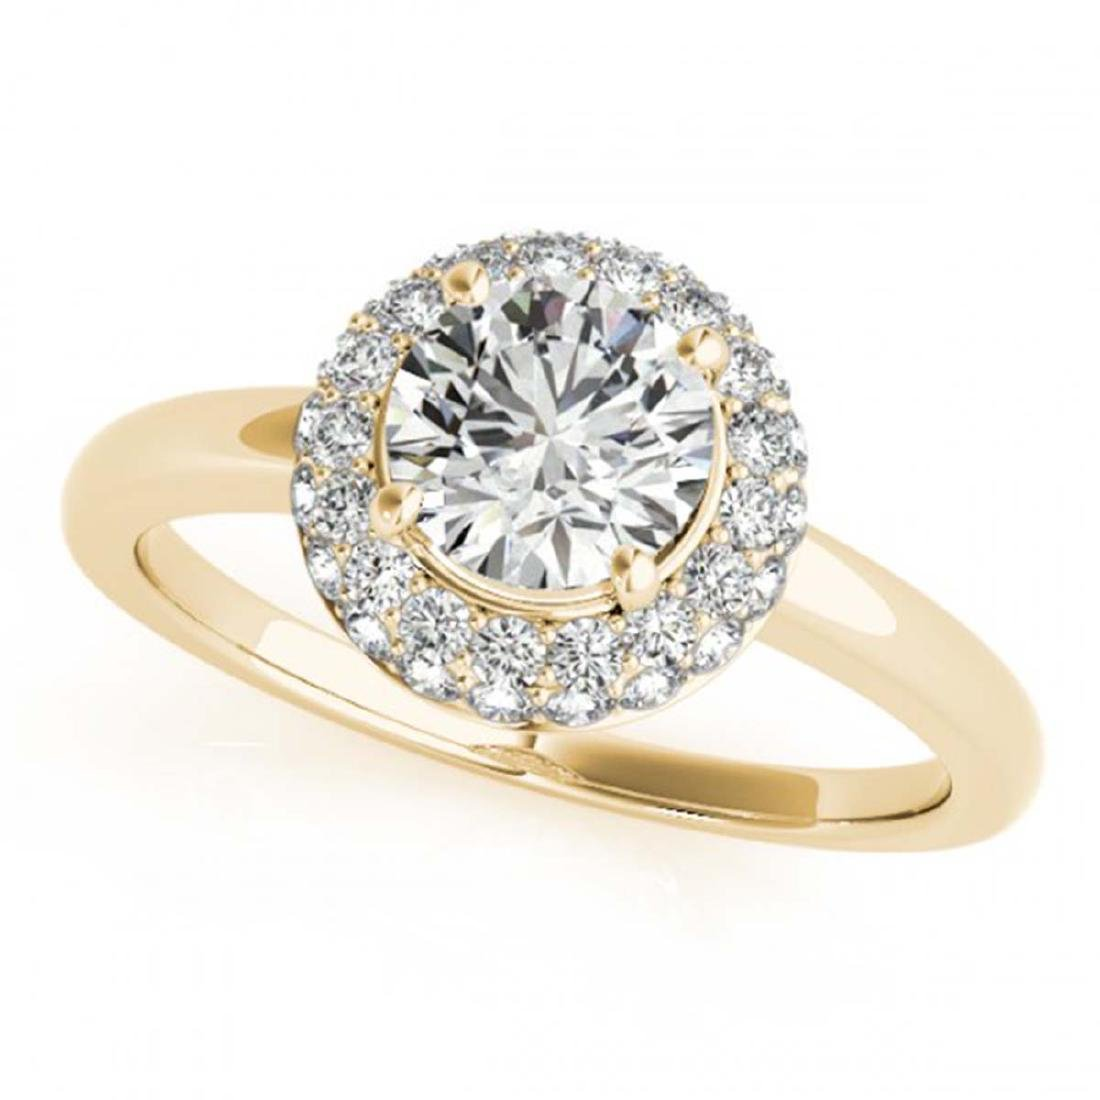 1 ctw VS/SI Diamond Halo Ring 18K Yellow Gold -